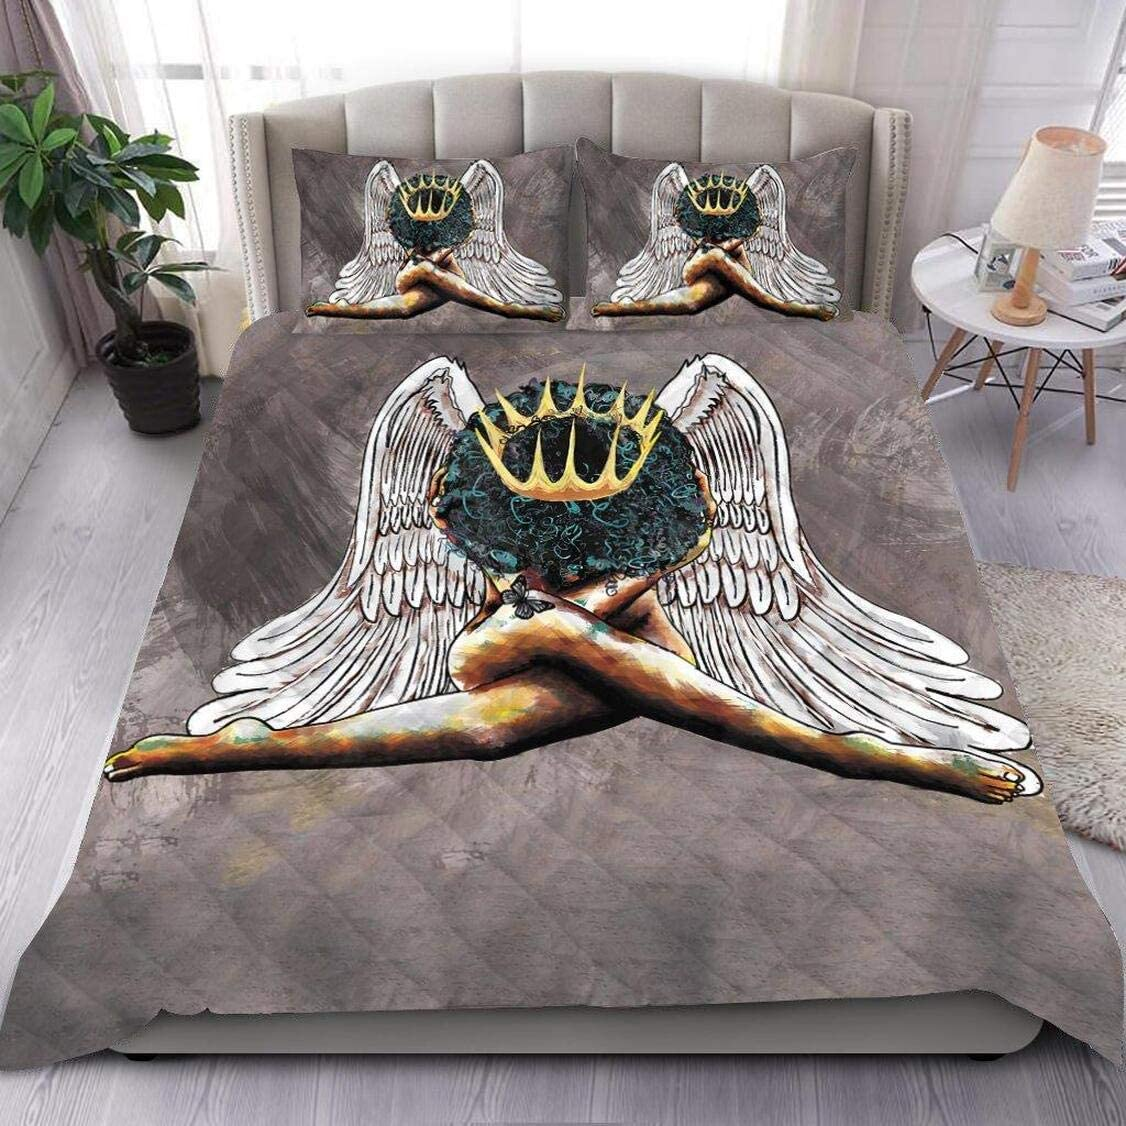 Personalized Black New Free Shipping Girl Queen Quilt Inexpensive Gift All Your Se for Lovers